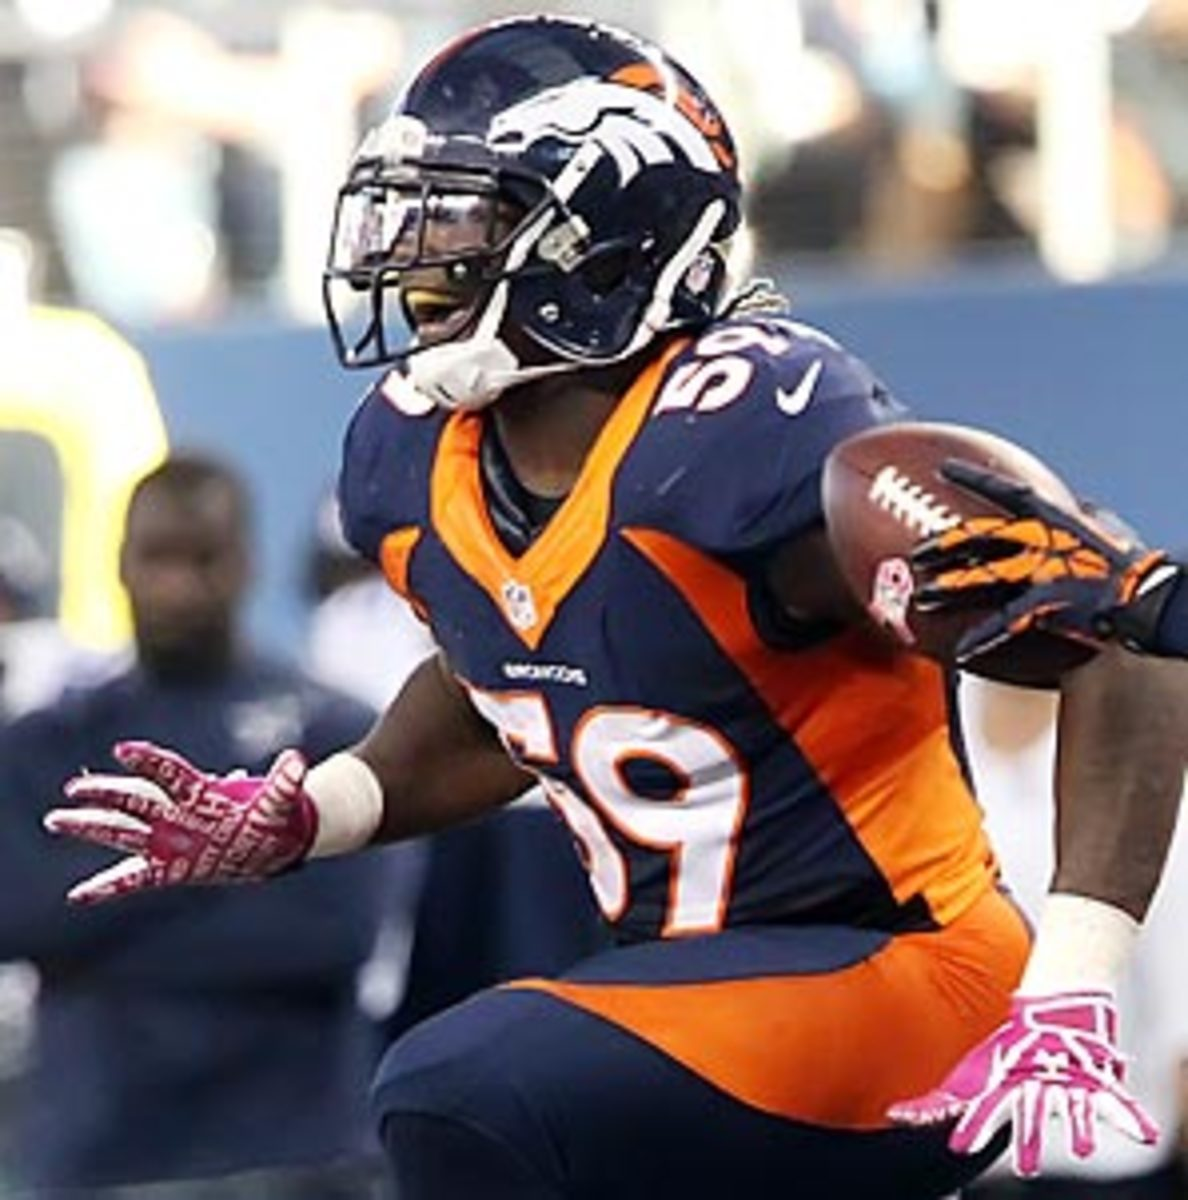 Unlike a premature Week 1 celebration that cost his team a touchdown, Danny Trevathan enjoyed every second of his celebration after intercepting Tony Romo.